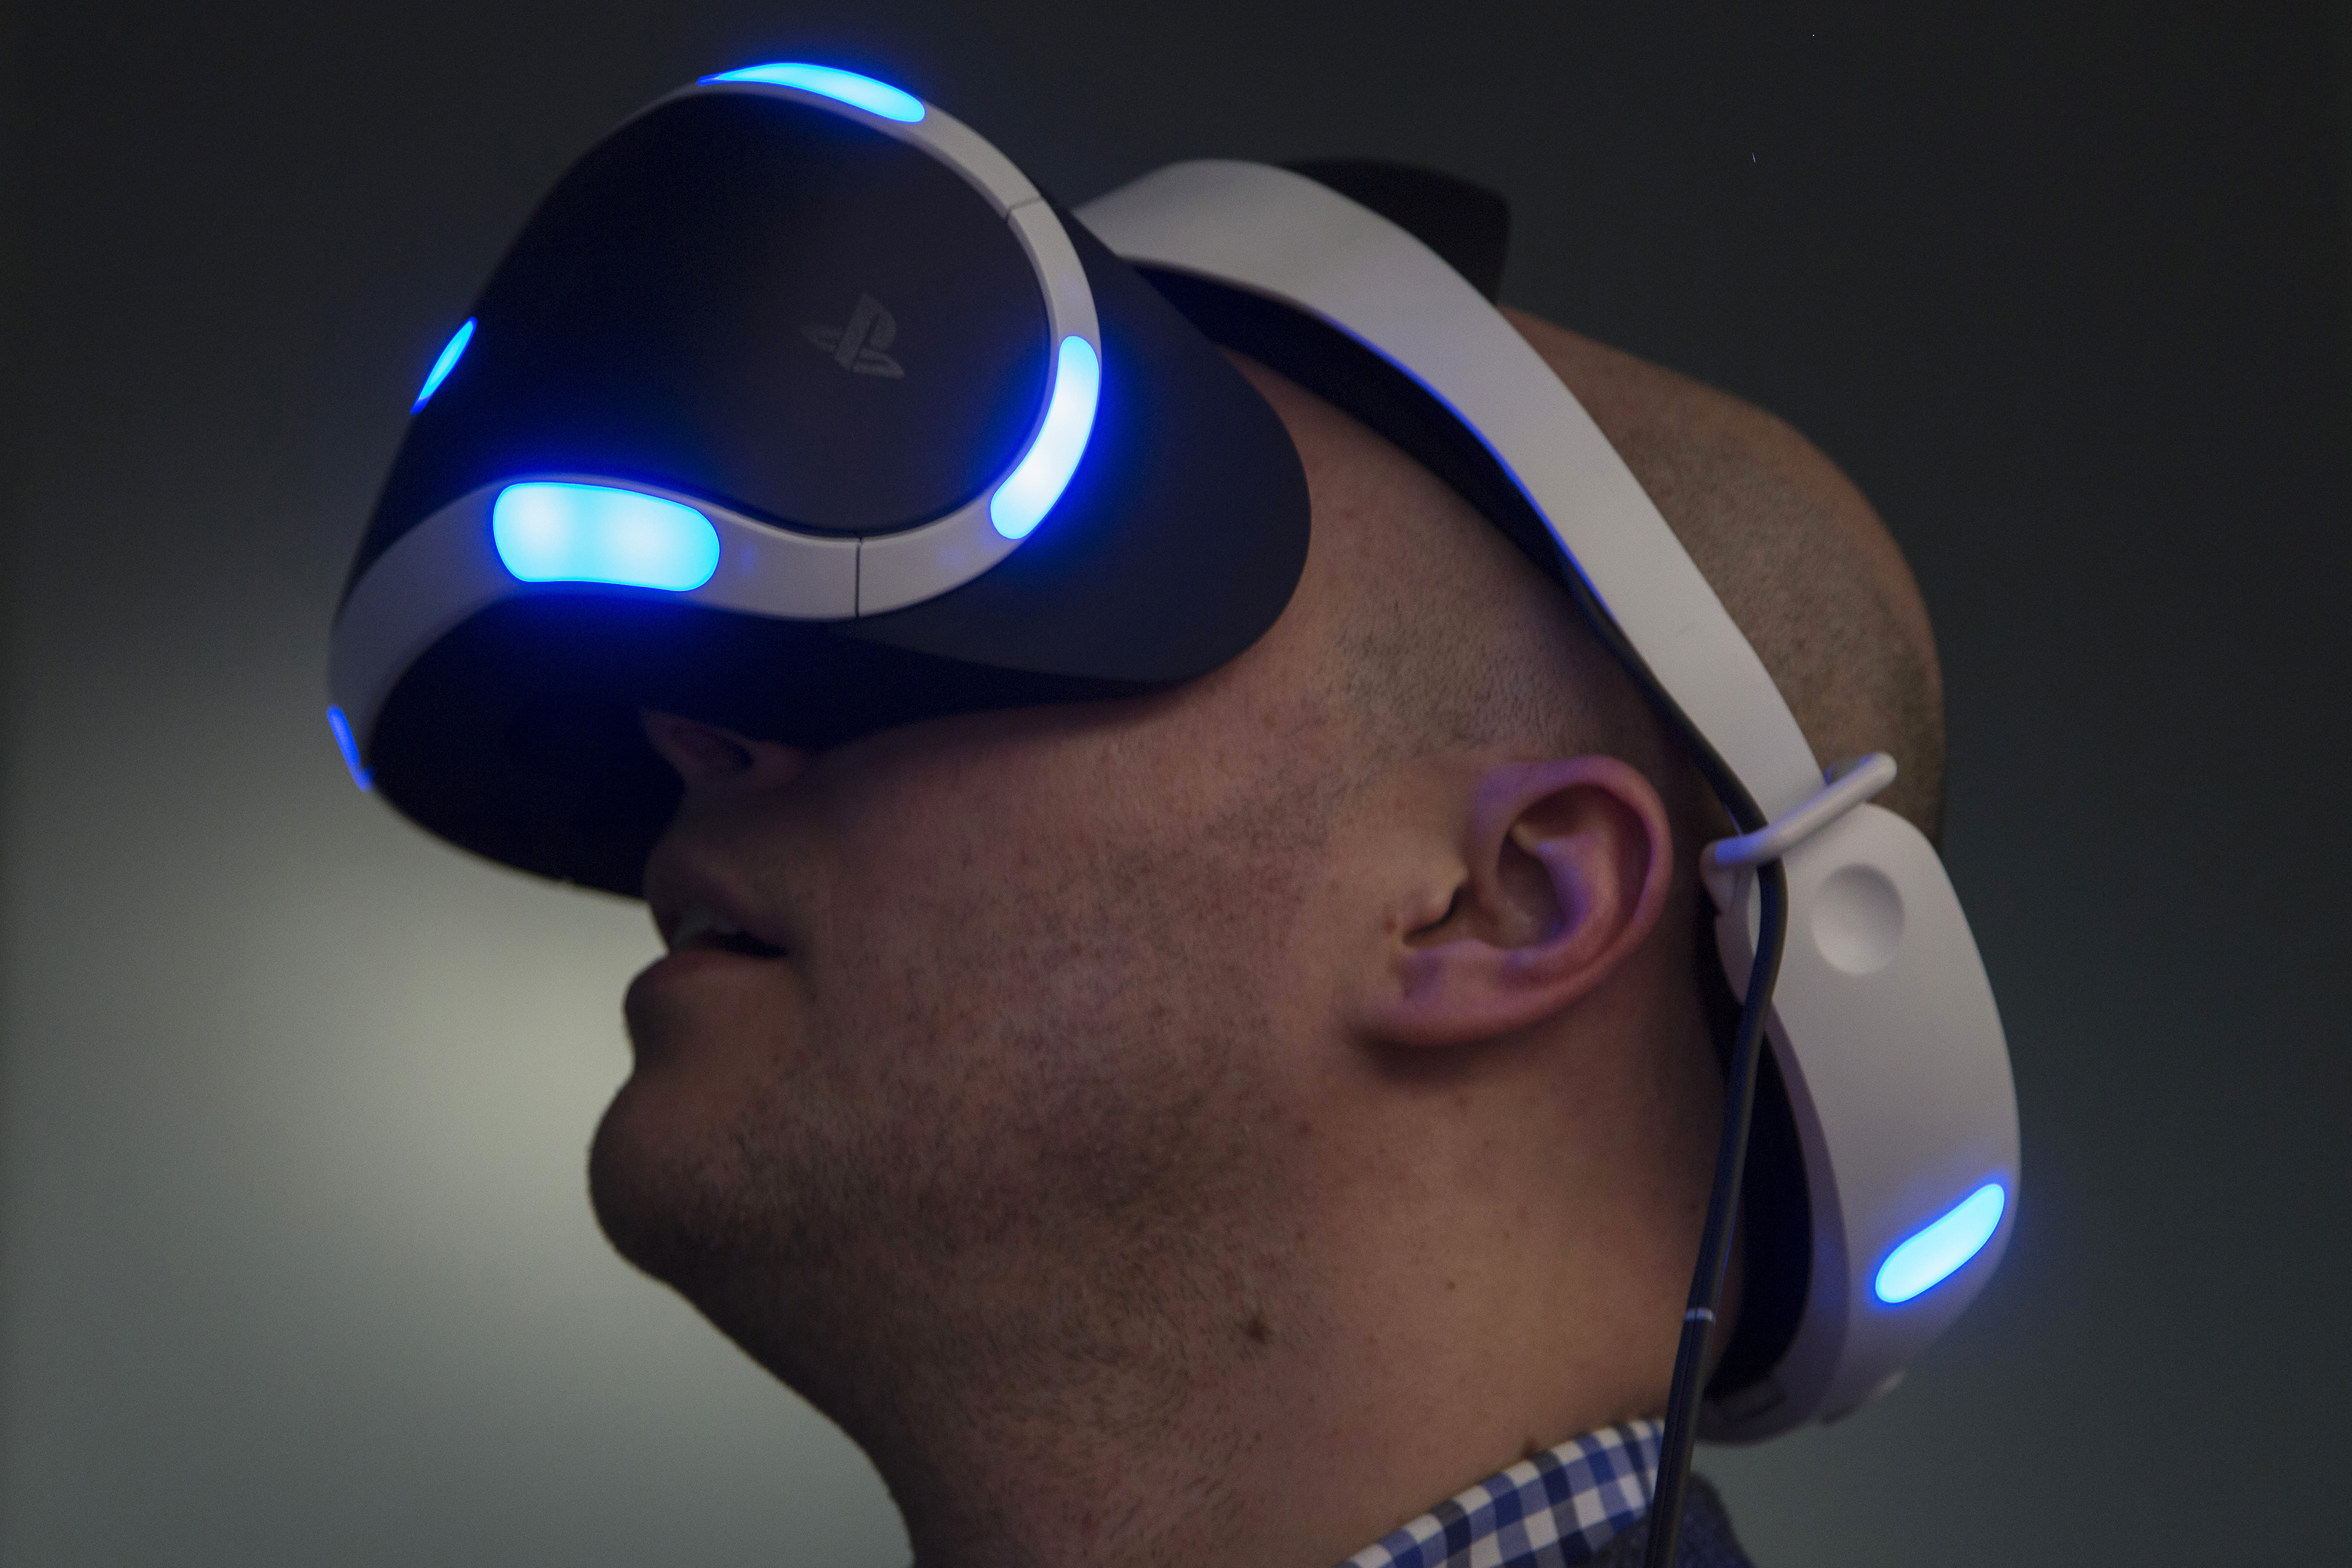 A member of the media plays a video game using a Sony Computer Entertainment Inc. Project Morpheus virtual-reality headset during a demonstration in Tokyo, Japan, on April 6, 2015.